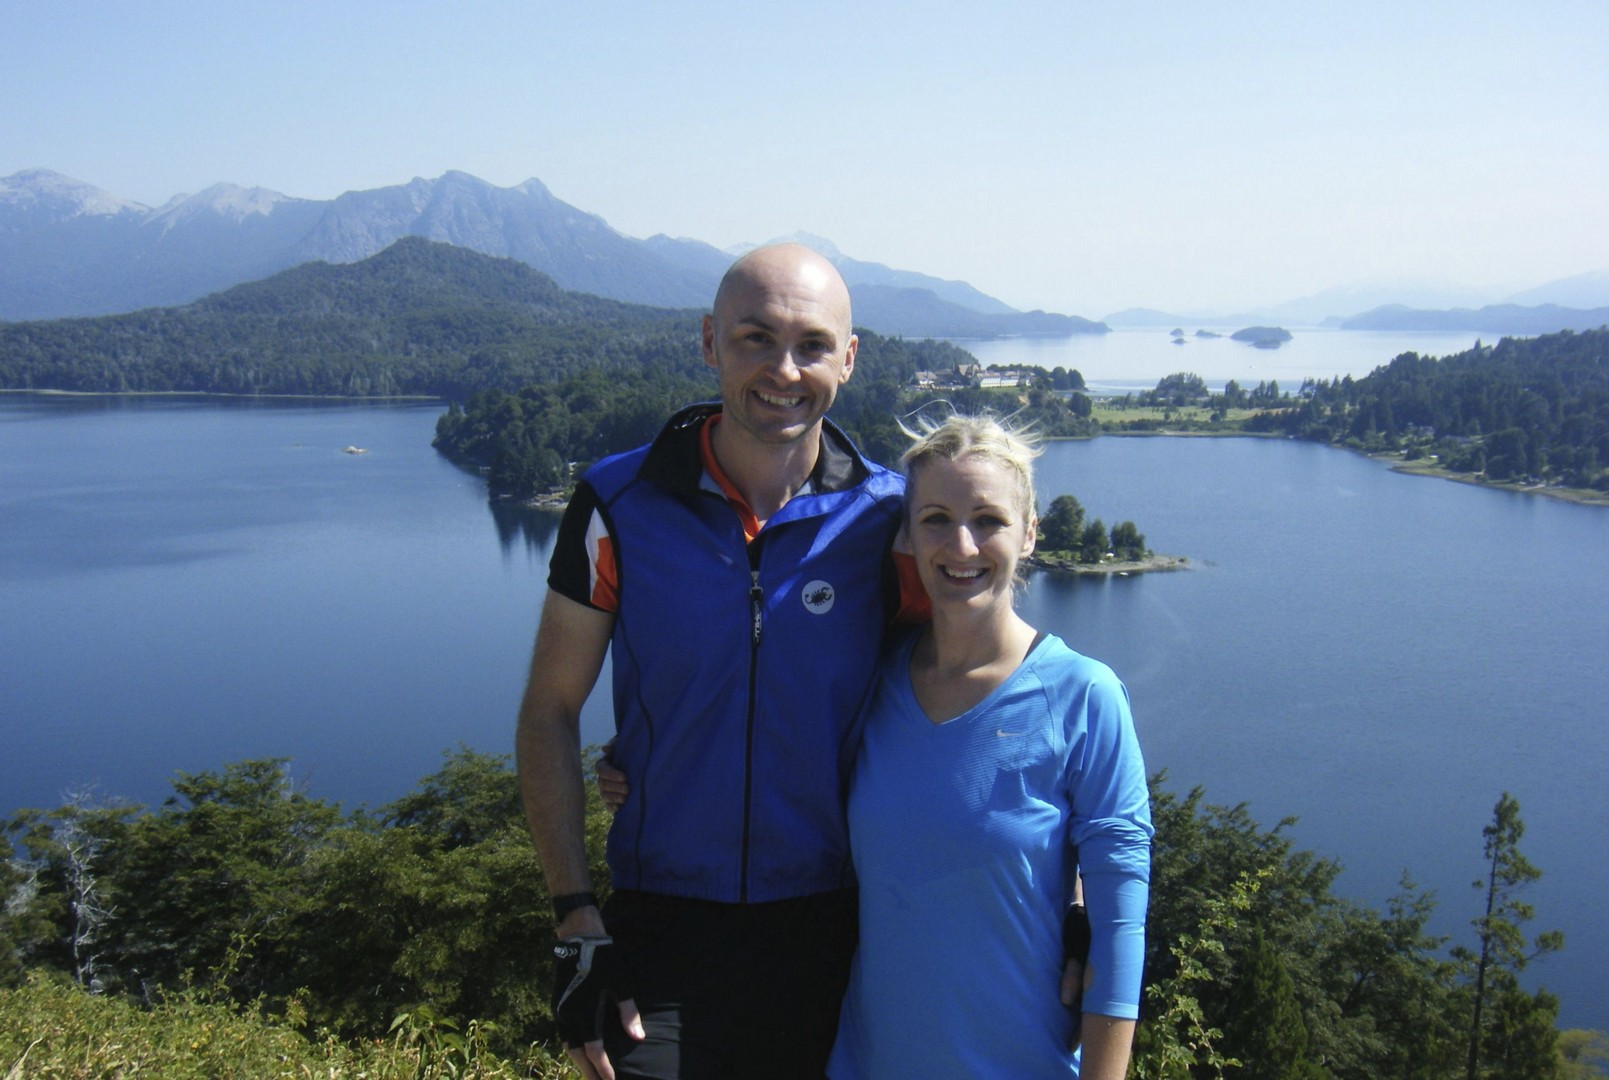 chile-cycling-holiday-adventure.jpg - Chile and Argentinian - Lake District - Cycling Adventures